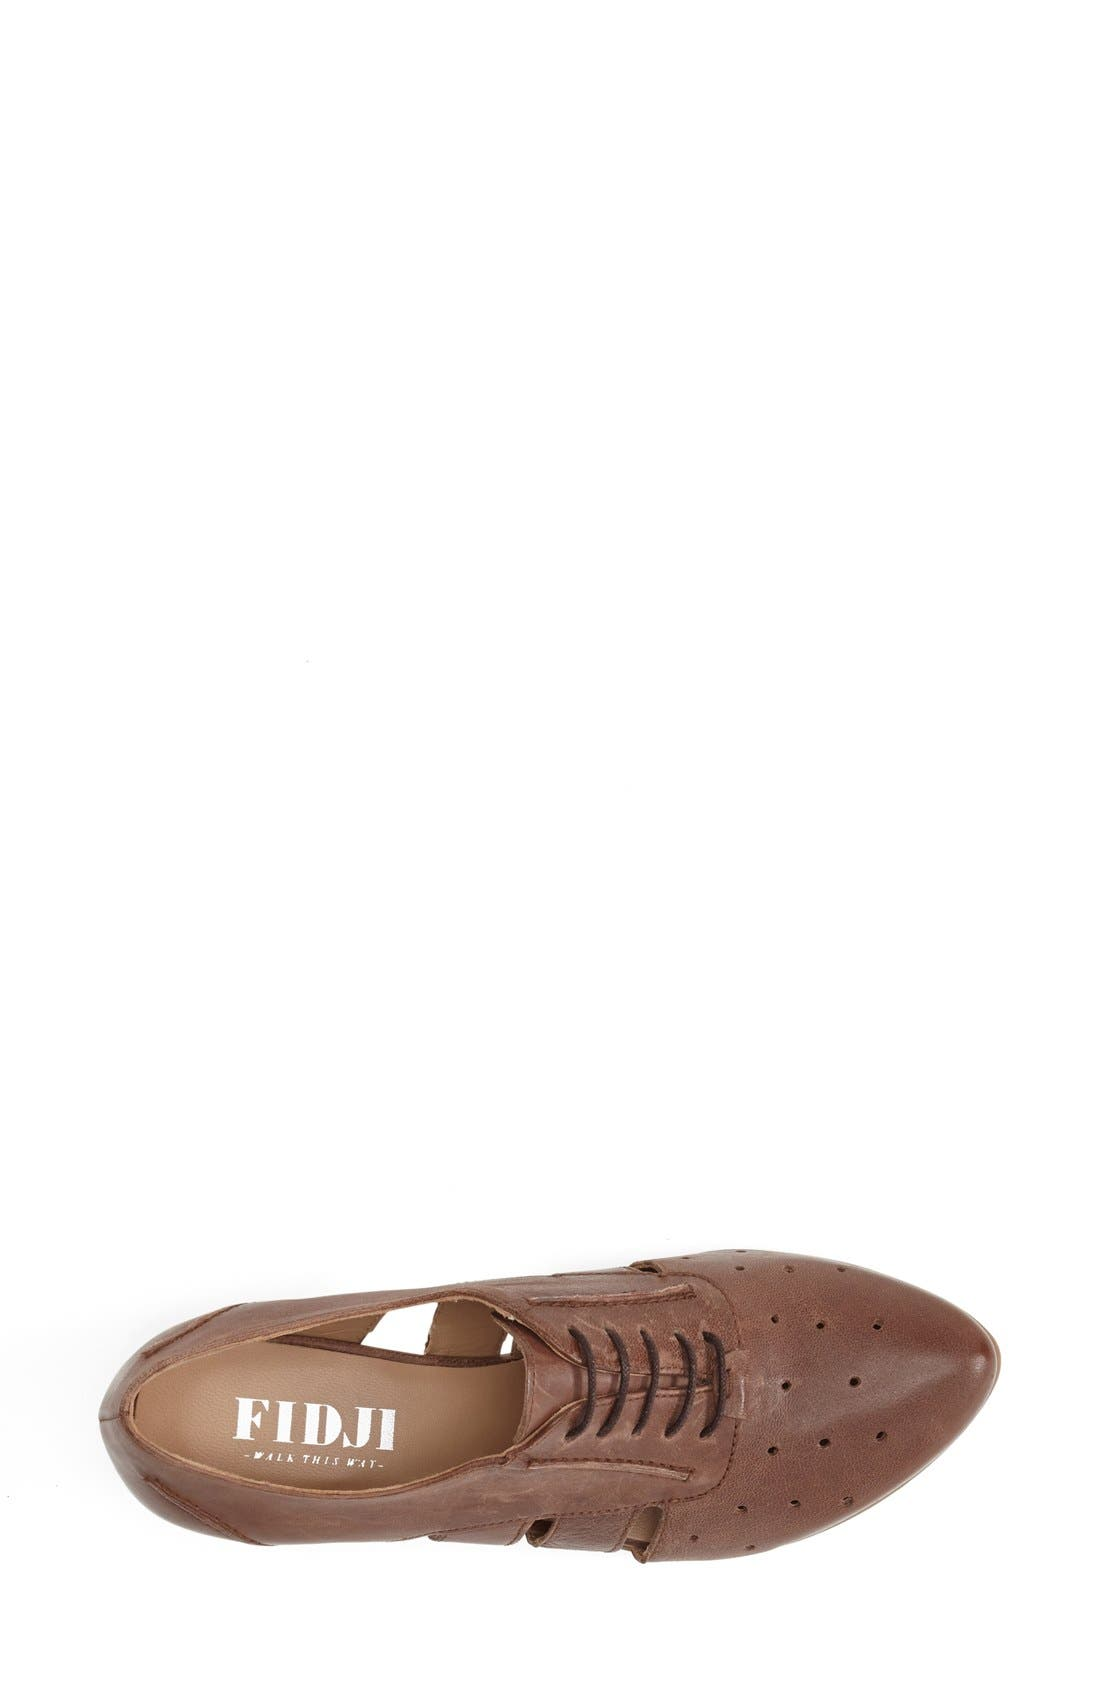 'VO92' Perforated Leather Pump,                             Alternate thumbnail 3, color,                             Brown